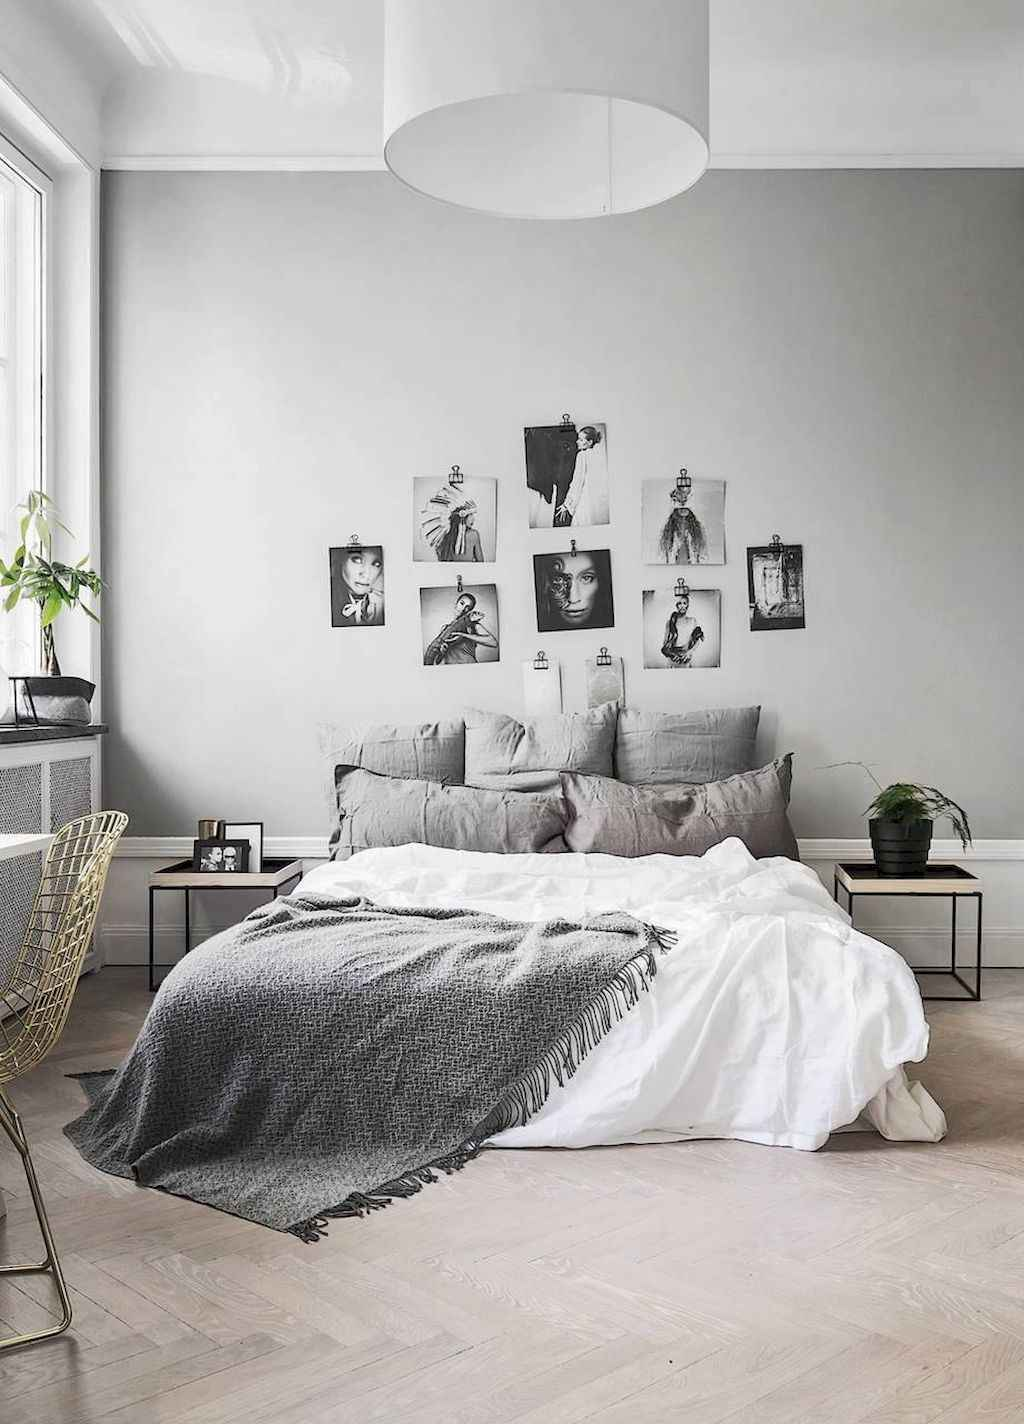 Awesome bedroom decoration ideas (1)